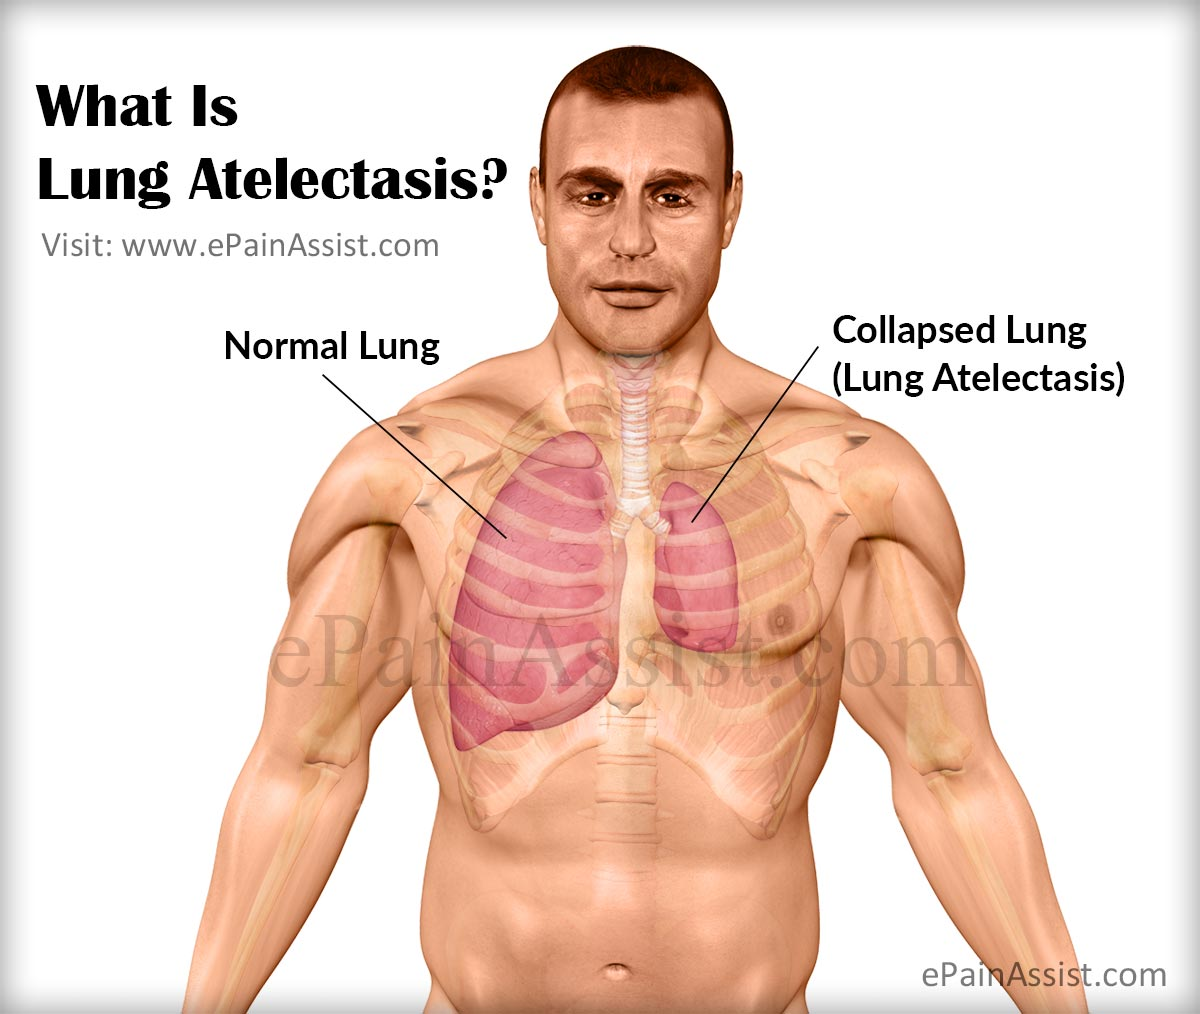 What is Lung Atelectasis (LA)?